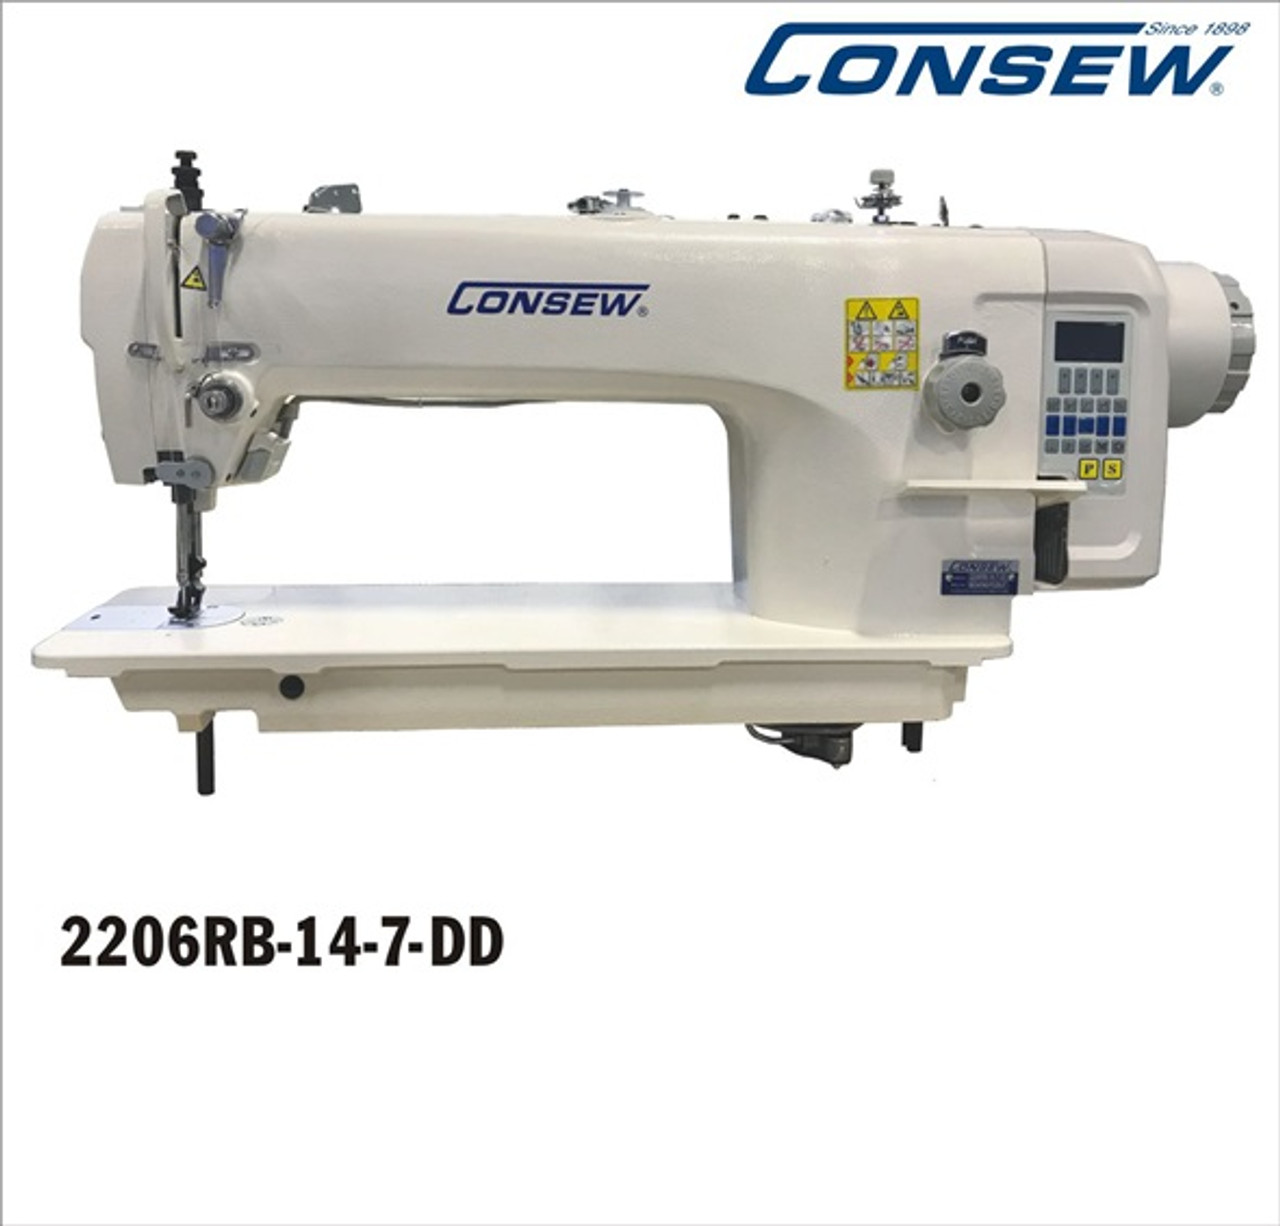 Consew 2206RB-14-7-DD  Fully Automatic Direct Drive, Walking Foot Machine